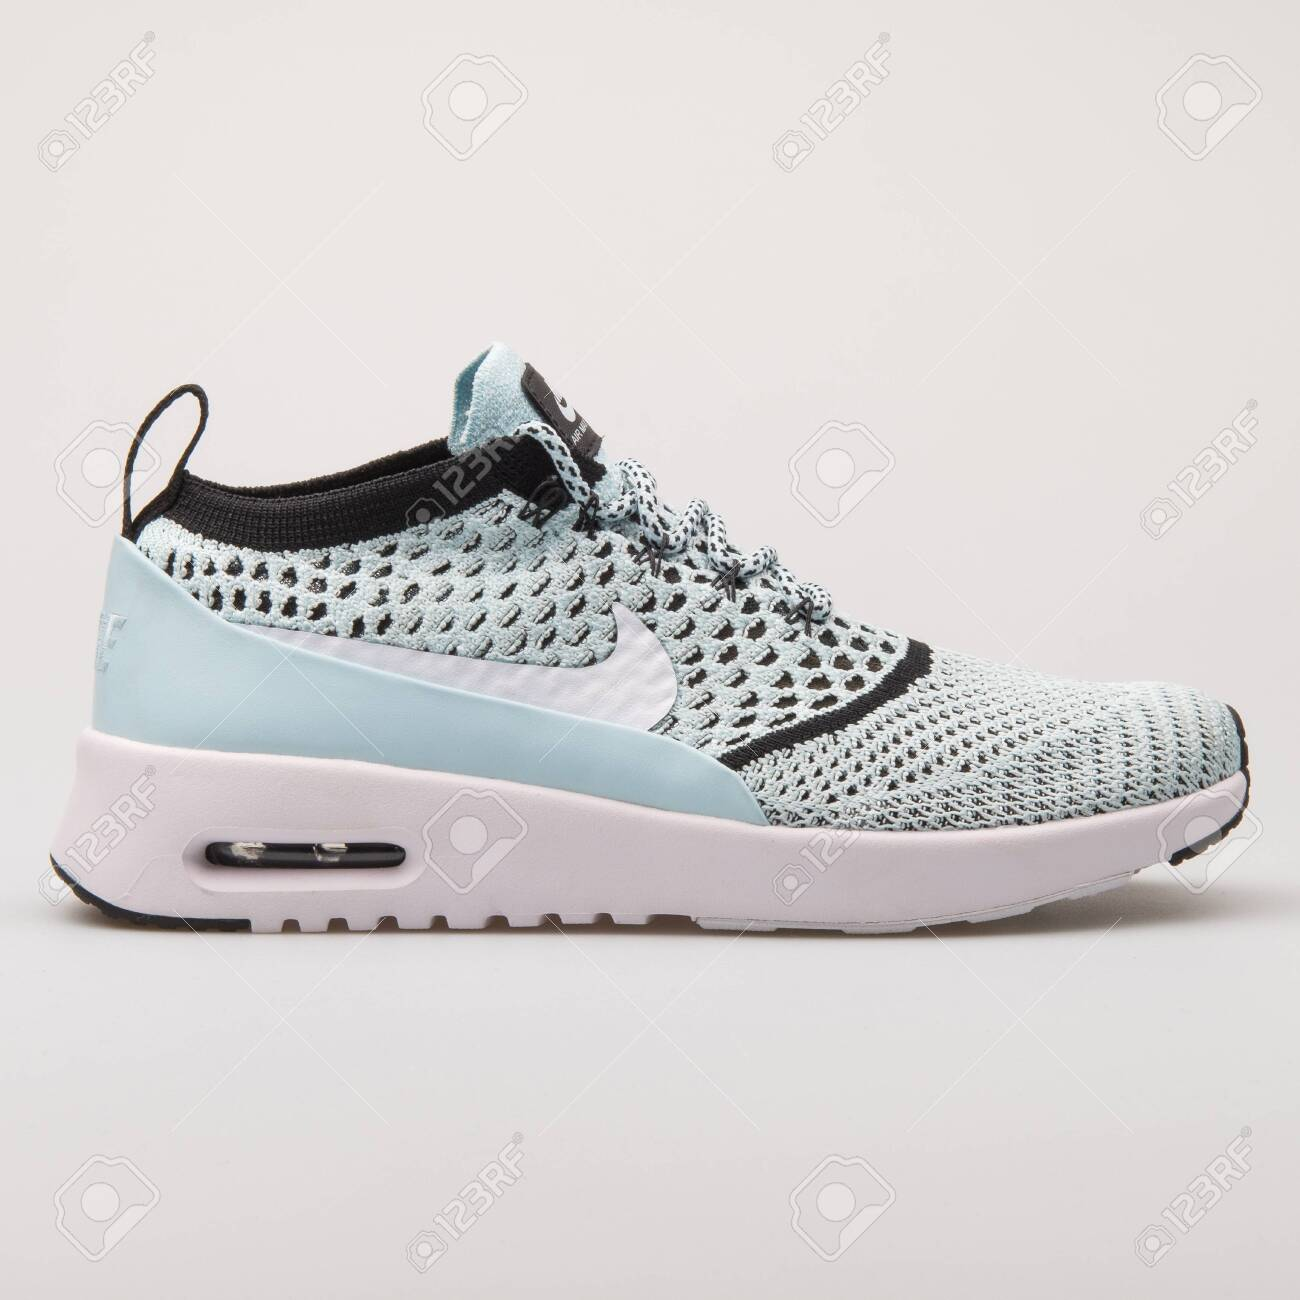 Nike Air Max Stockfotos & Nike Air Max Bilder Alamy